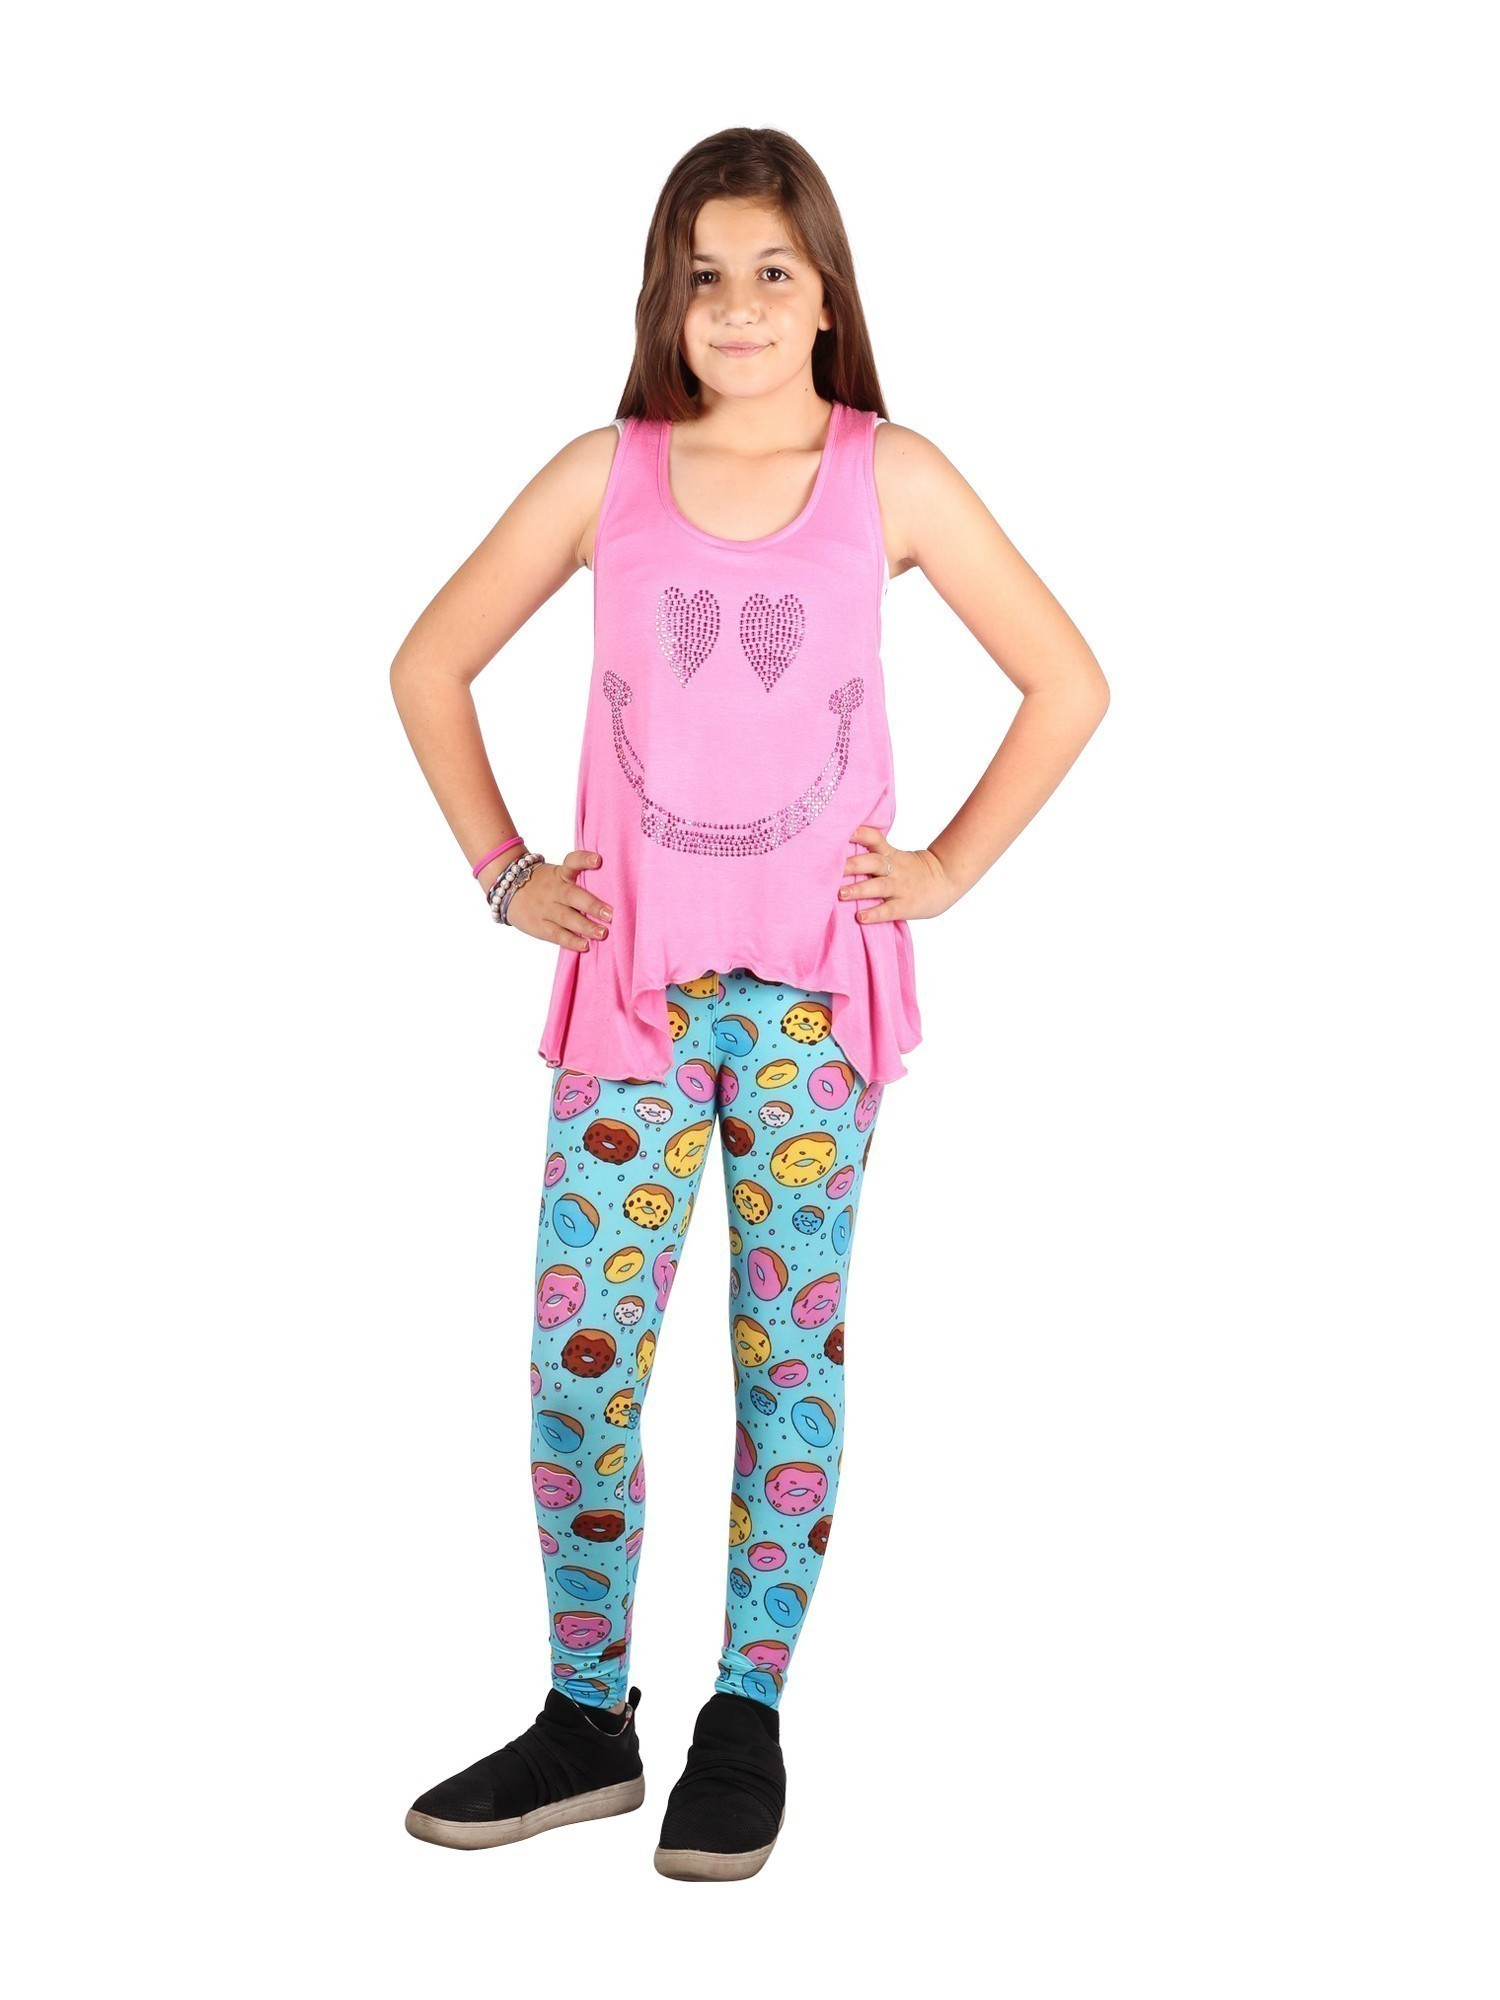 Lori /& Jane Big Girls Pink Sleeveless Tank Doughnuts Leggings Outfit Set 6-14